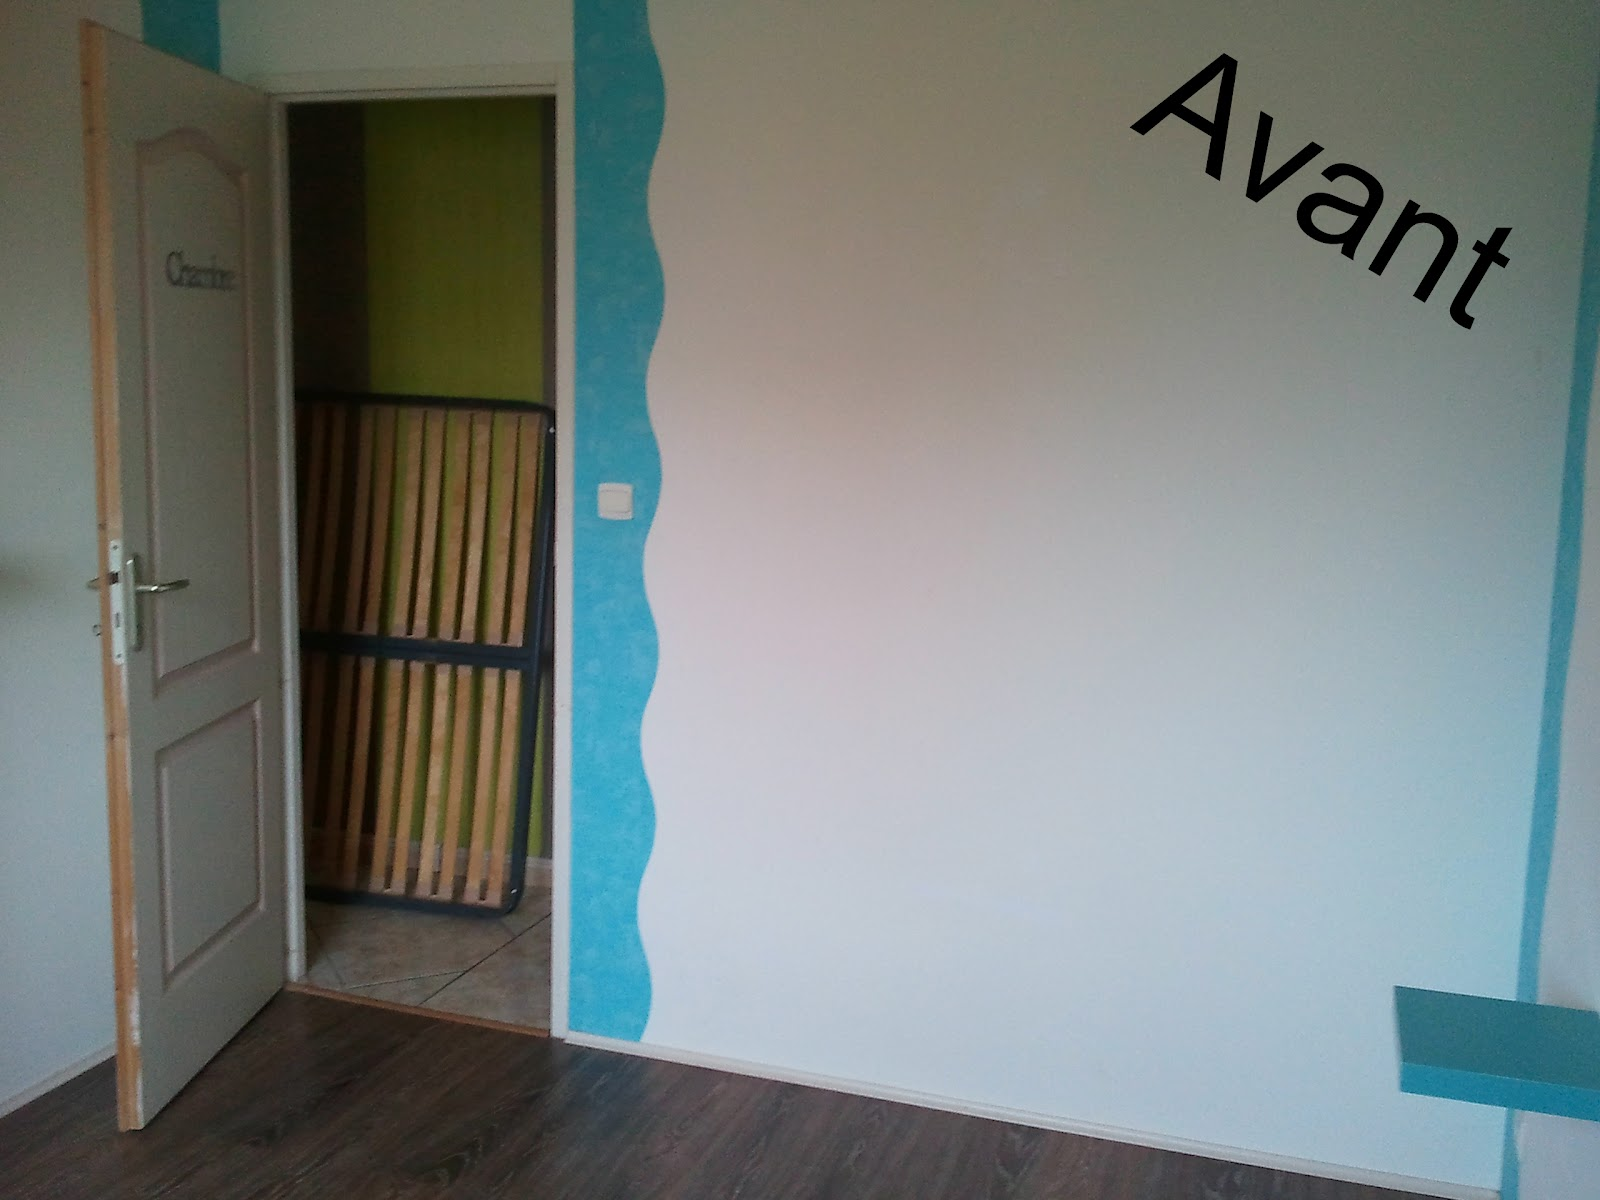 Per 39 in d co avant apr s chambre adulte n 2 - Idee amenagement chambre adulte ...